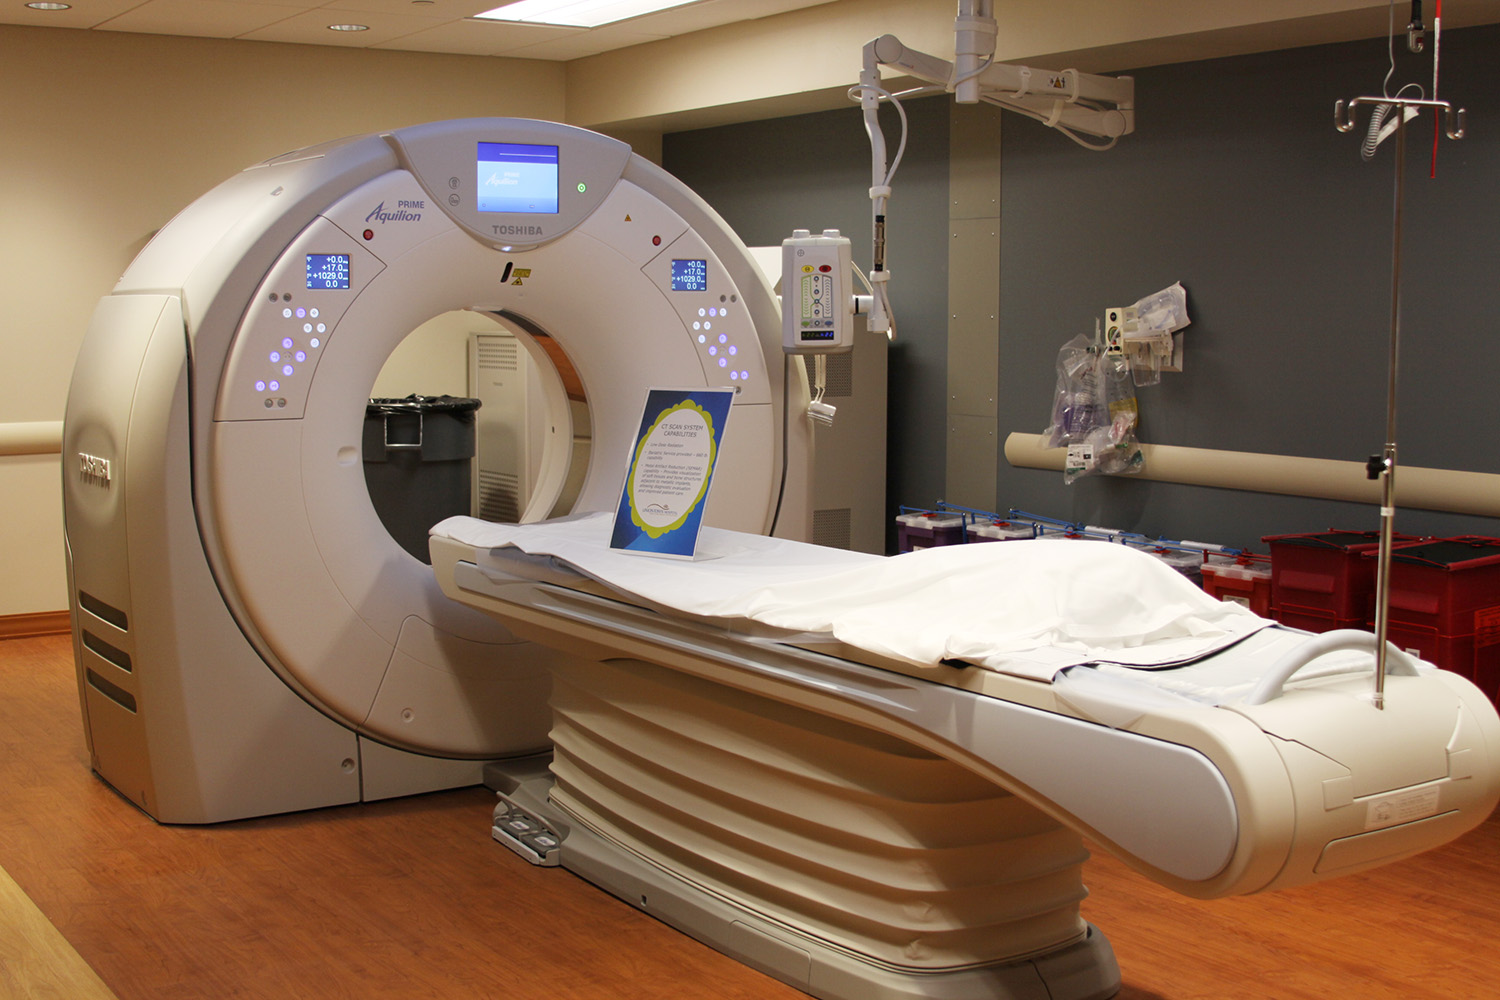 Diagnostic imaging uniontown hospital all technologists are registered and have specific certification in their areas of expertise the department also maintains two registered nurses and 13 1betcityfo Image collections